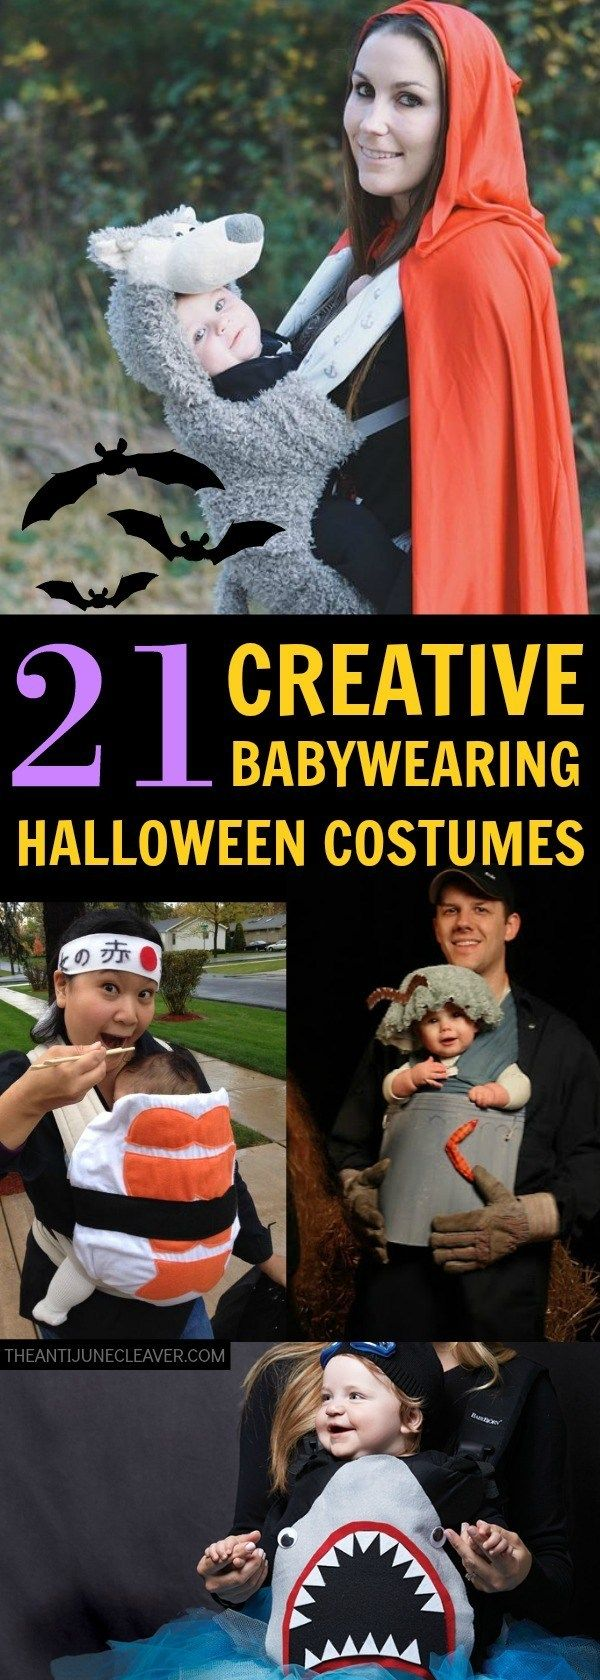 21 Babywearing Halloween Costumes - The Anti-June Cleaver